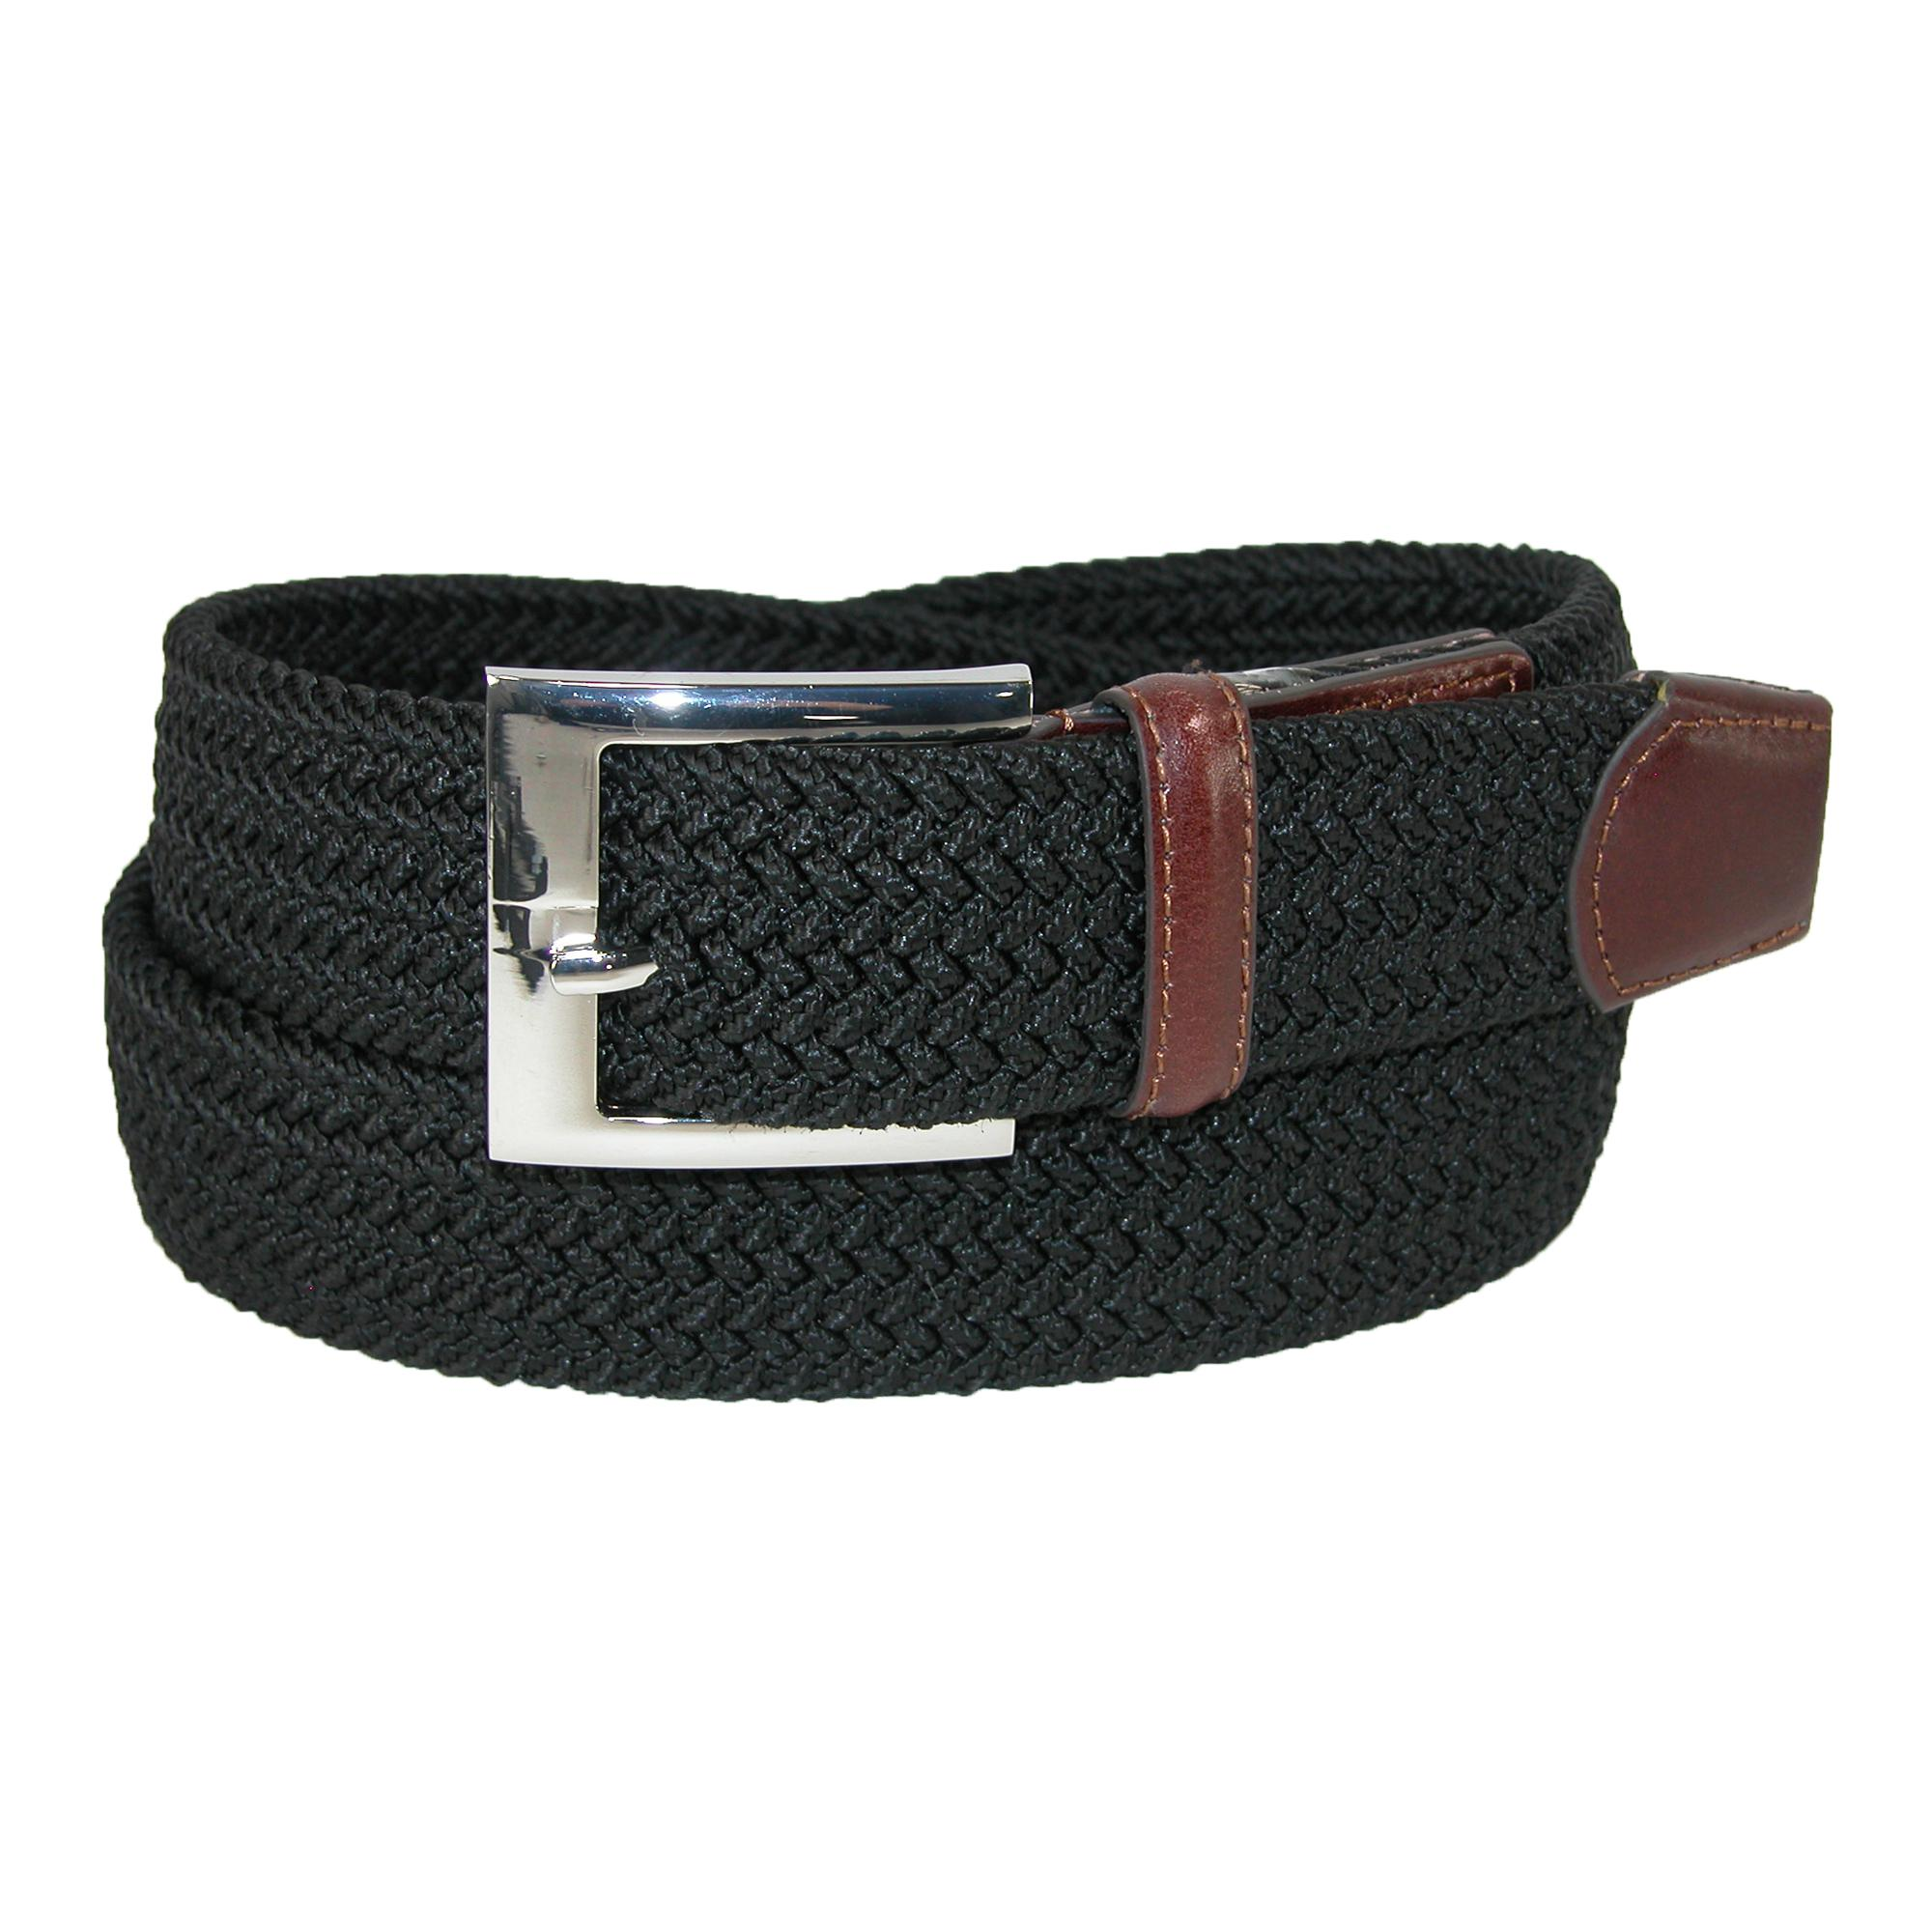 Pga Mens Fabric Braided Stretch Golf Belt With Leather End Tabs